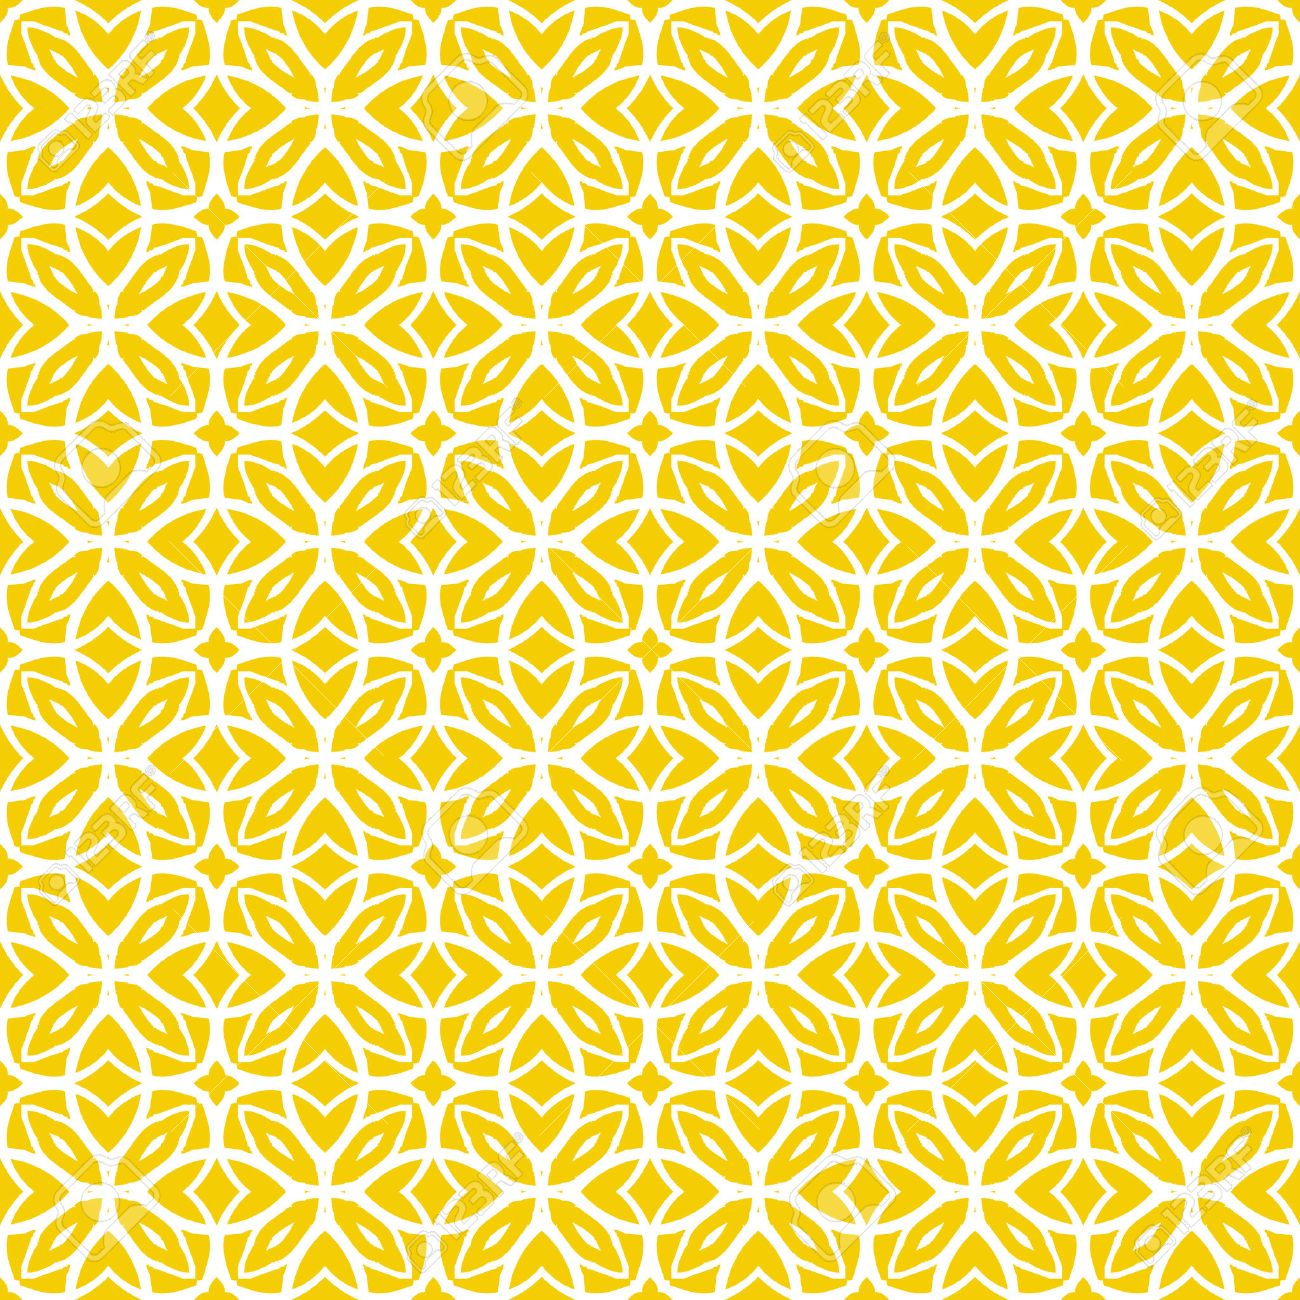 Vector Geometric Art Deco Pattern With Lacing Shapes In Yellow ...